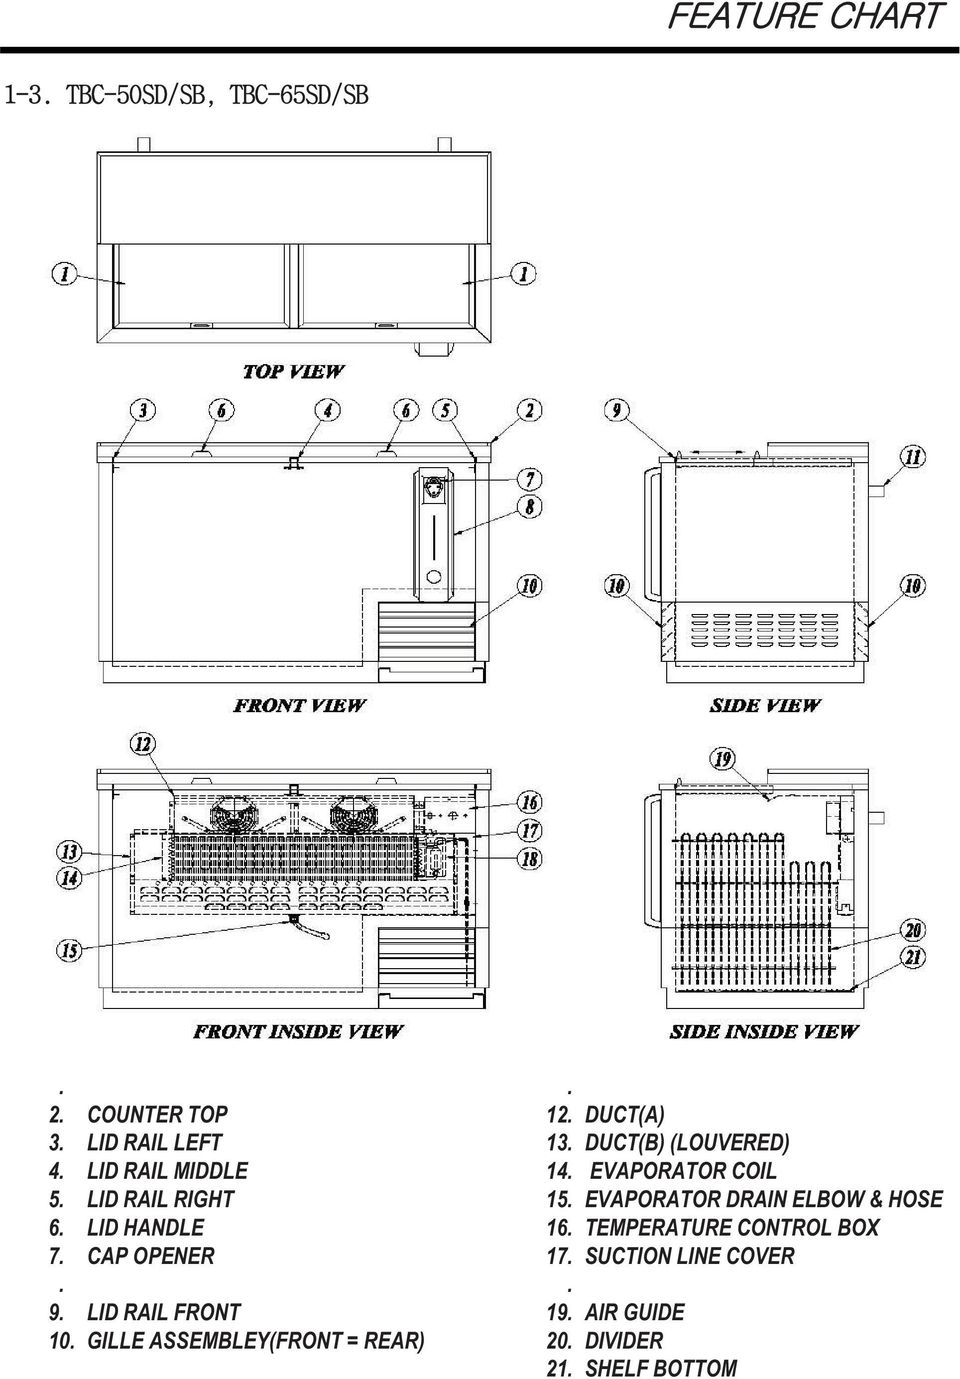 hight resolution of duct a 13 duct b louvered 14 evaporator